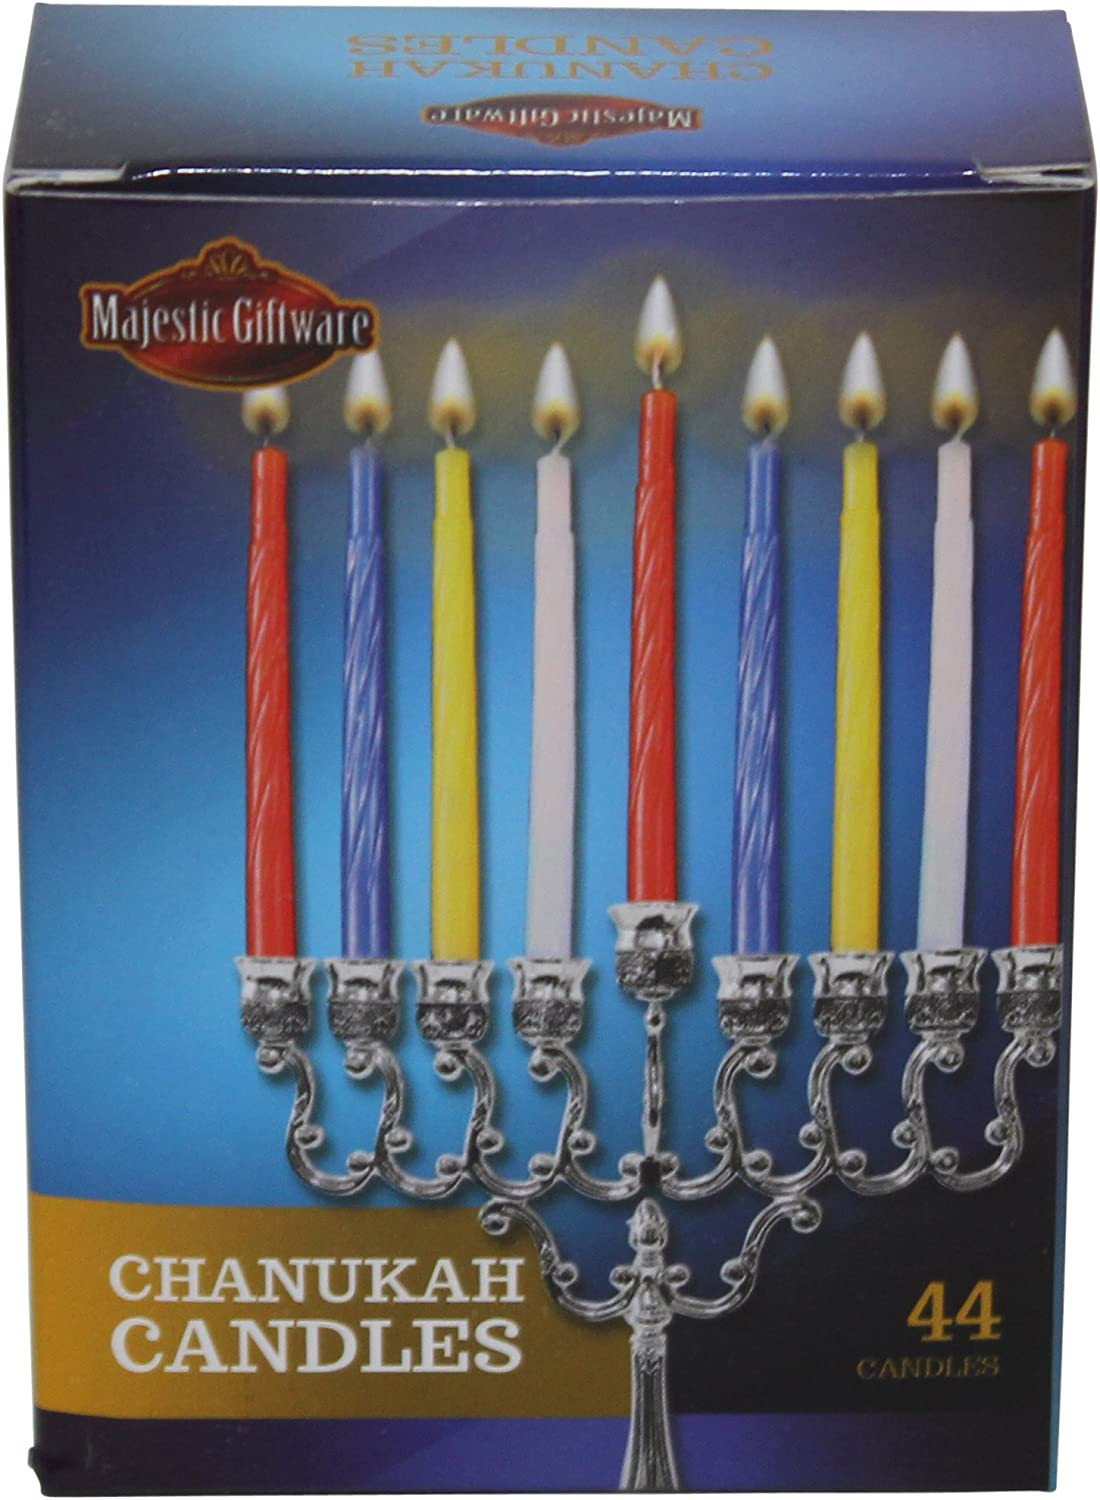 Majestic Giftware CH-C Chanukah Candles 44 Ct 4 H